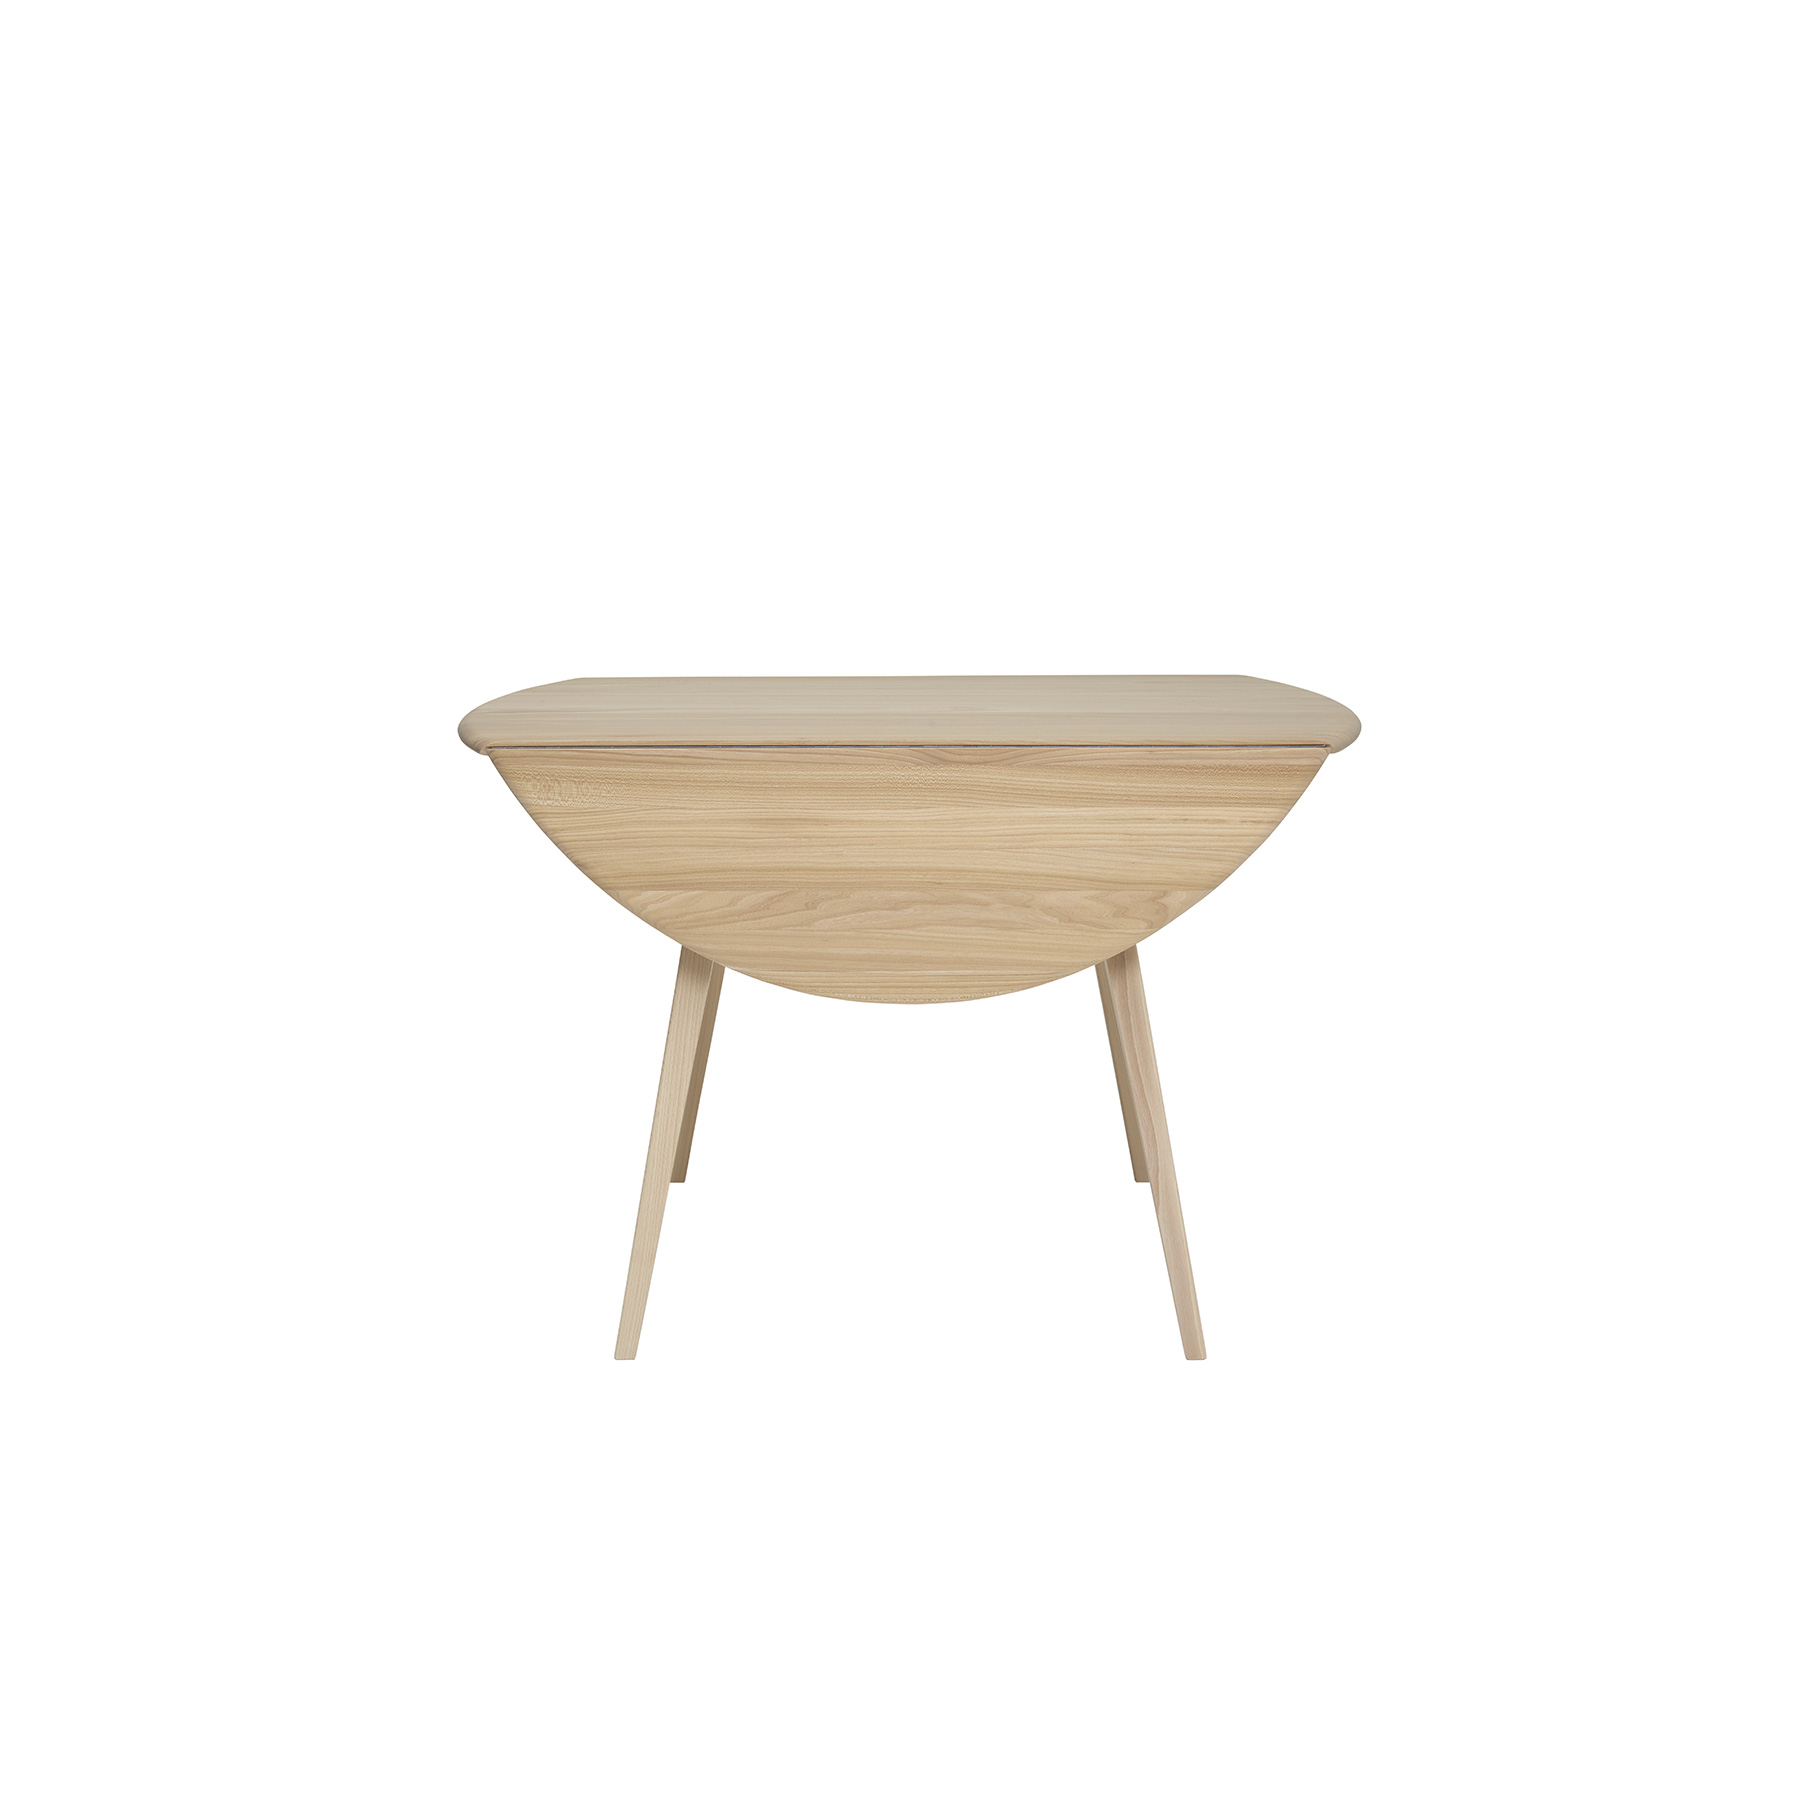 Originals Drop Leaf Dining Table - <p>The Ercol Originals are pieces of timeless and classic design that never date or show their age. It is furniture that is as relevant and as functional now as it was when it was created in the 1950s and 1960s. This furniture was designed by Ercol's founder, Lucian Ercolani, who drew for his inspiration on the time-proven local design and craft in the Chiltern Hills around where he lived and built his first factory in 1920 in High Wycombe. Using the strength of beech and the beauty of elm he carried this definition on into a huge variety of dining, kitchen, and school chairs and then extended the idiom into the low easy chair range epitomised by the 206 armchair and the studio couch. The beauty of the colour and the grain of the elm took Lucian on to use elm for the tables and cabinets of the Originals and the following Windsor range. The drop leaf table dining table is a reintroduction of a 50&#039;s Original design with its splayed, tapered legs and a solid Ash top. The classic design creates a simple but contemporary look. This table has the added space-saving flexibility of drop leaves on either side when the table is not in use, making it perfect for smaller spaces. When fully opened it seats 4 with ease, and a cosy 6  can even squeeze around it. The drop leaf table can be finished in a variety of wood finishes and paint colours to suit your individual style and décor.  An accessible piece of classic design for today's lifestyle.</p>    Matter of Stuff